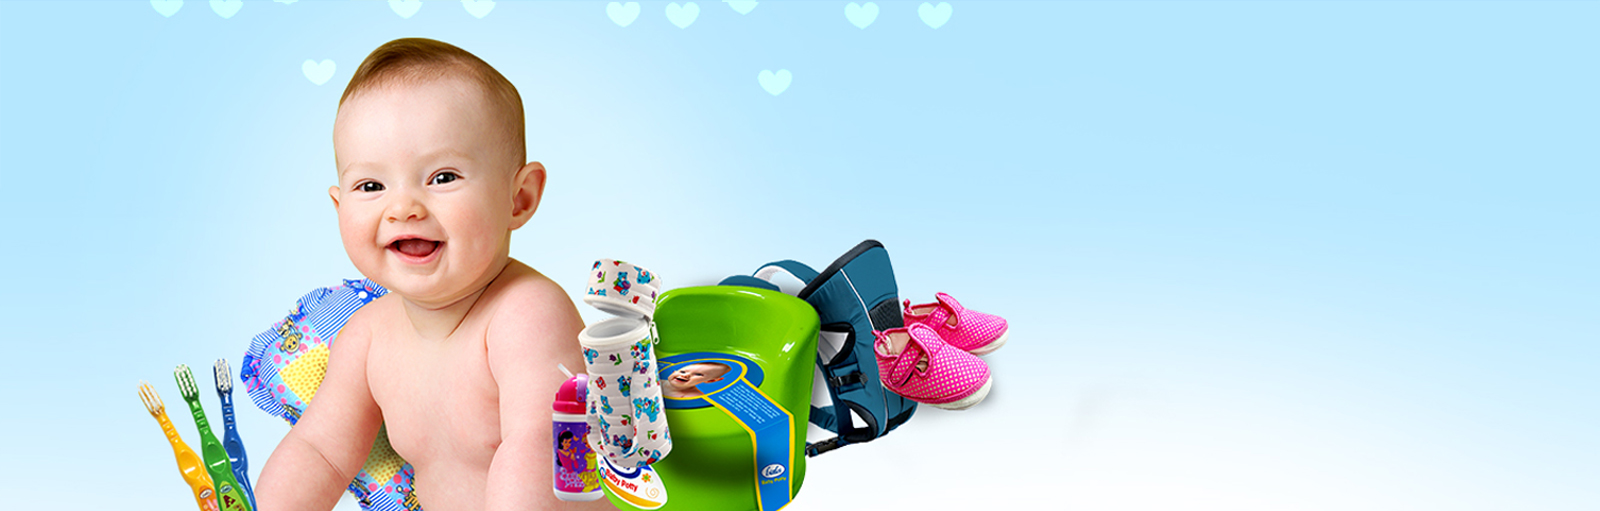 Our Range of World Class Baby Care Products